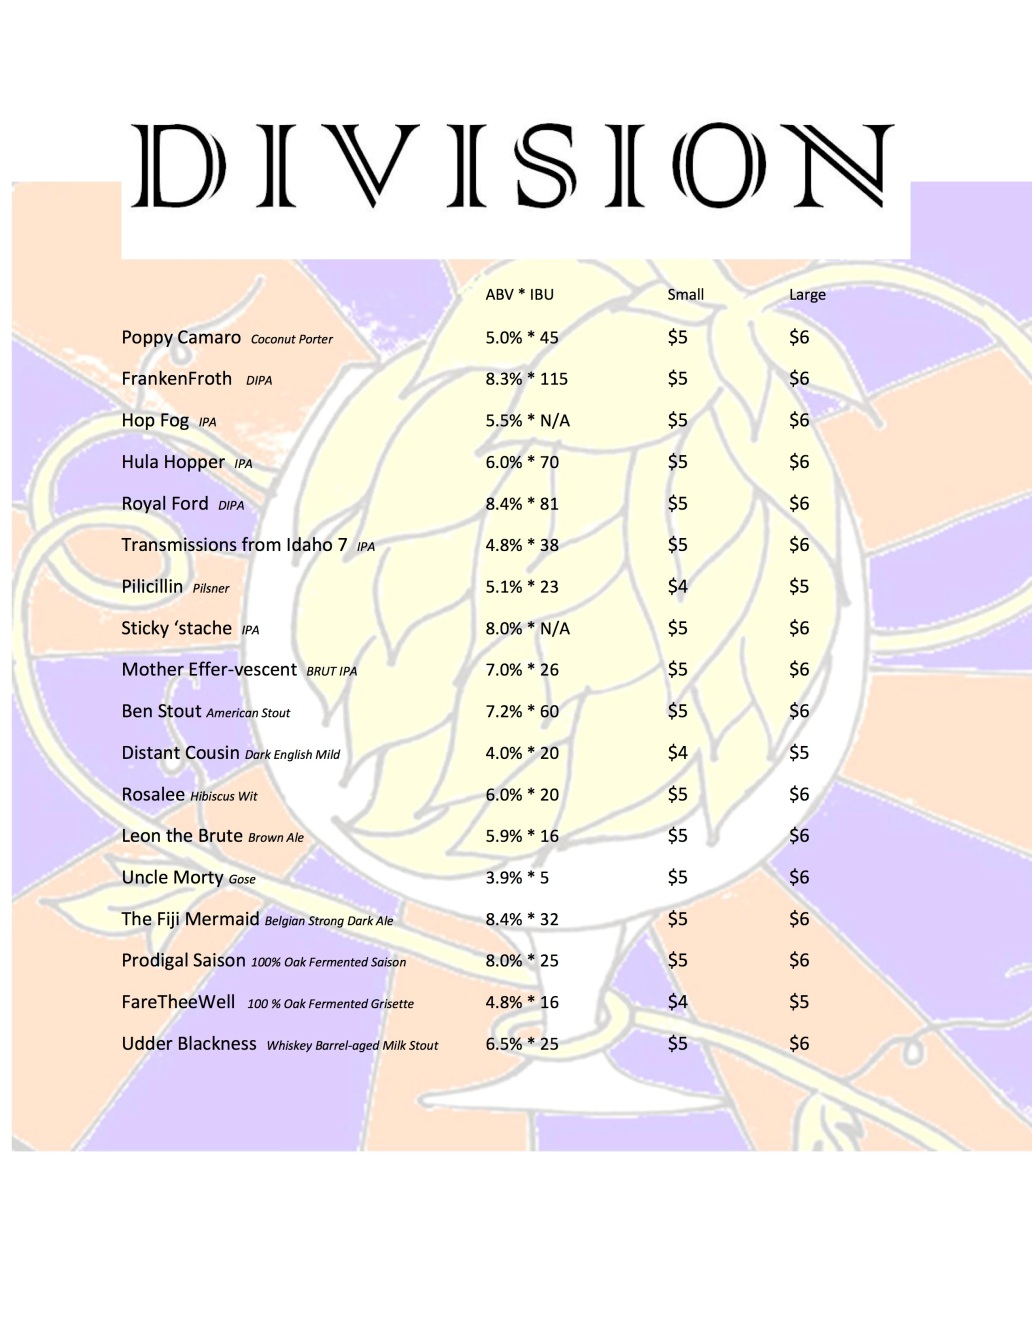 Division Beer Pricing